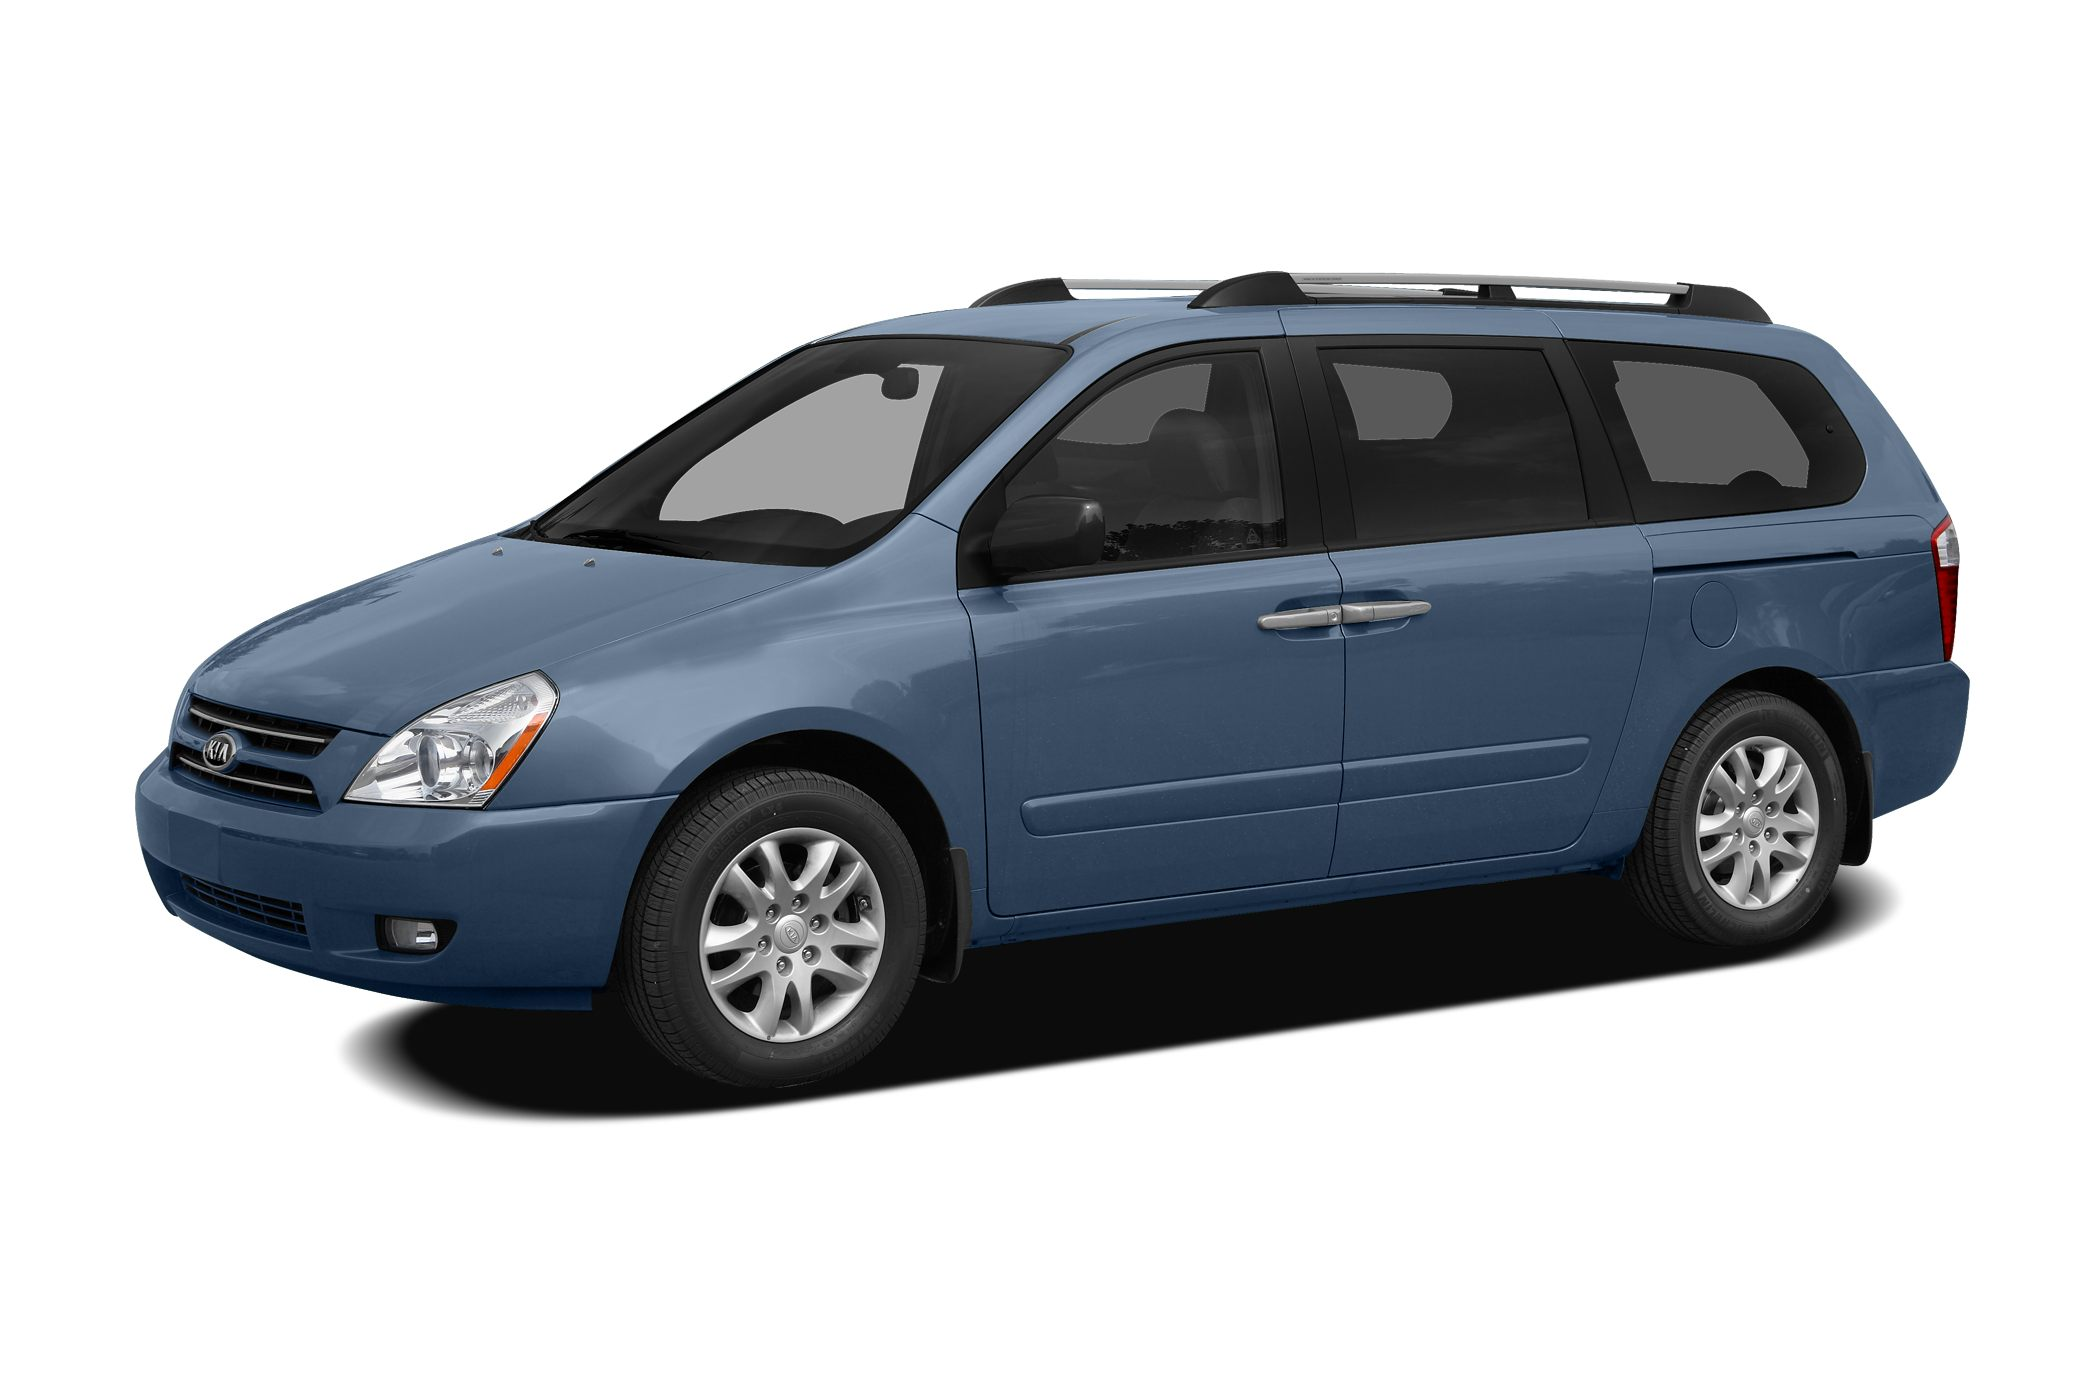 2007 Kia Sedona EX Right van Right price Drive this home today Type your sentence here Your qu